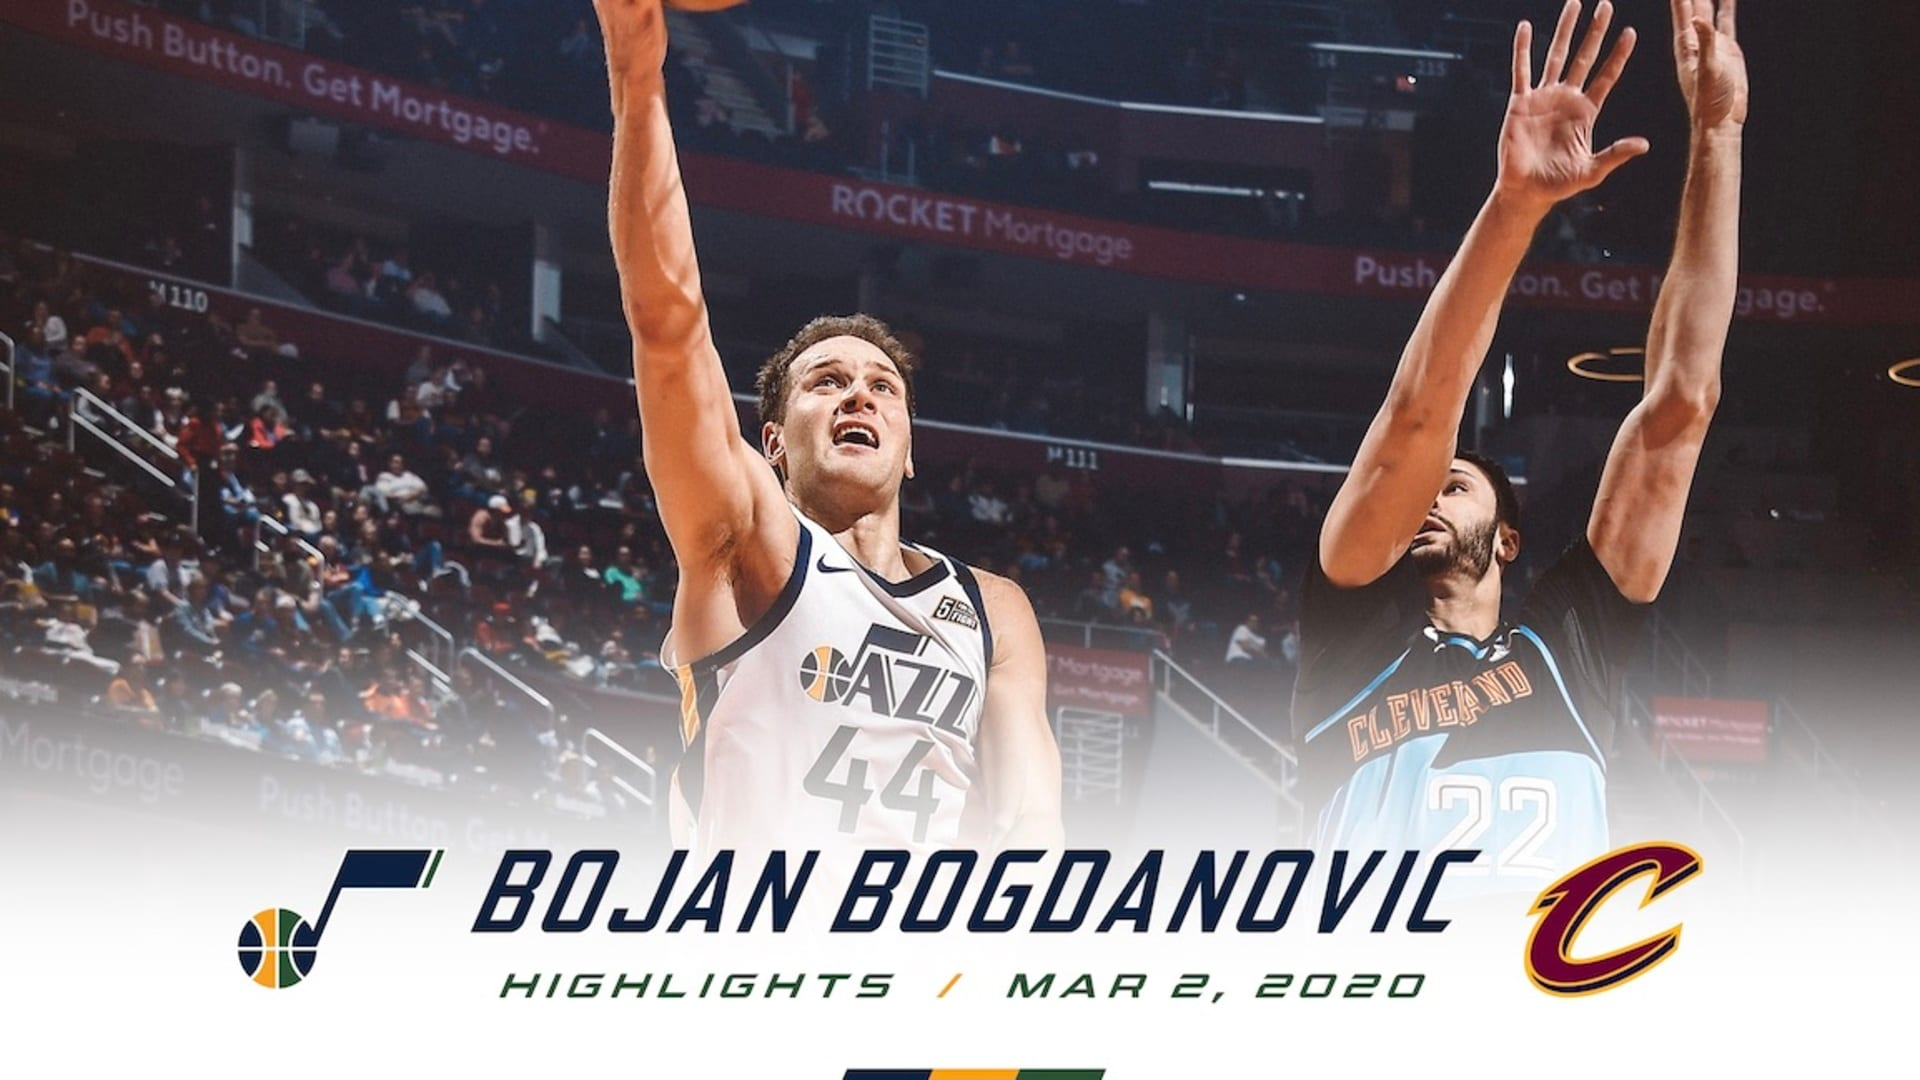 Highlights: Bojan Bogdanovic — 28 points, 5 3-pointers